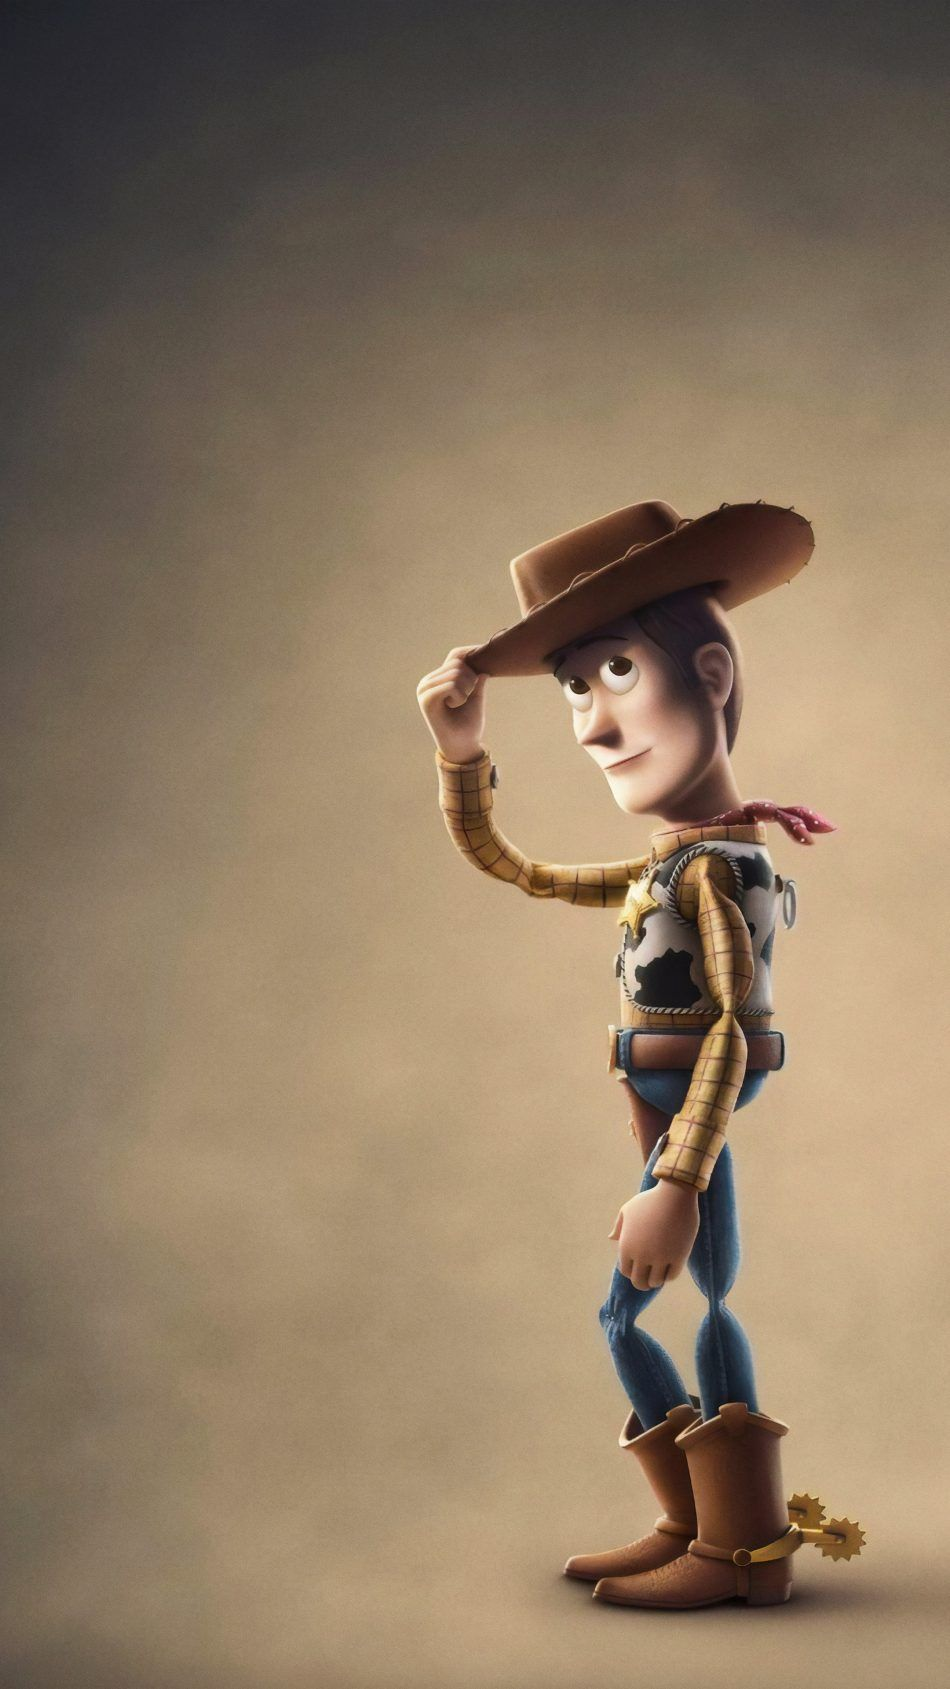 Woody Toy Story 4 Movie Wallpapers Disney wallpaper Wallpaper 950x1689